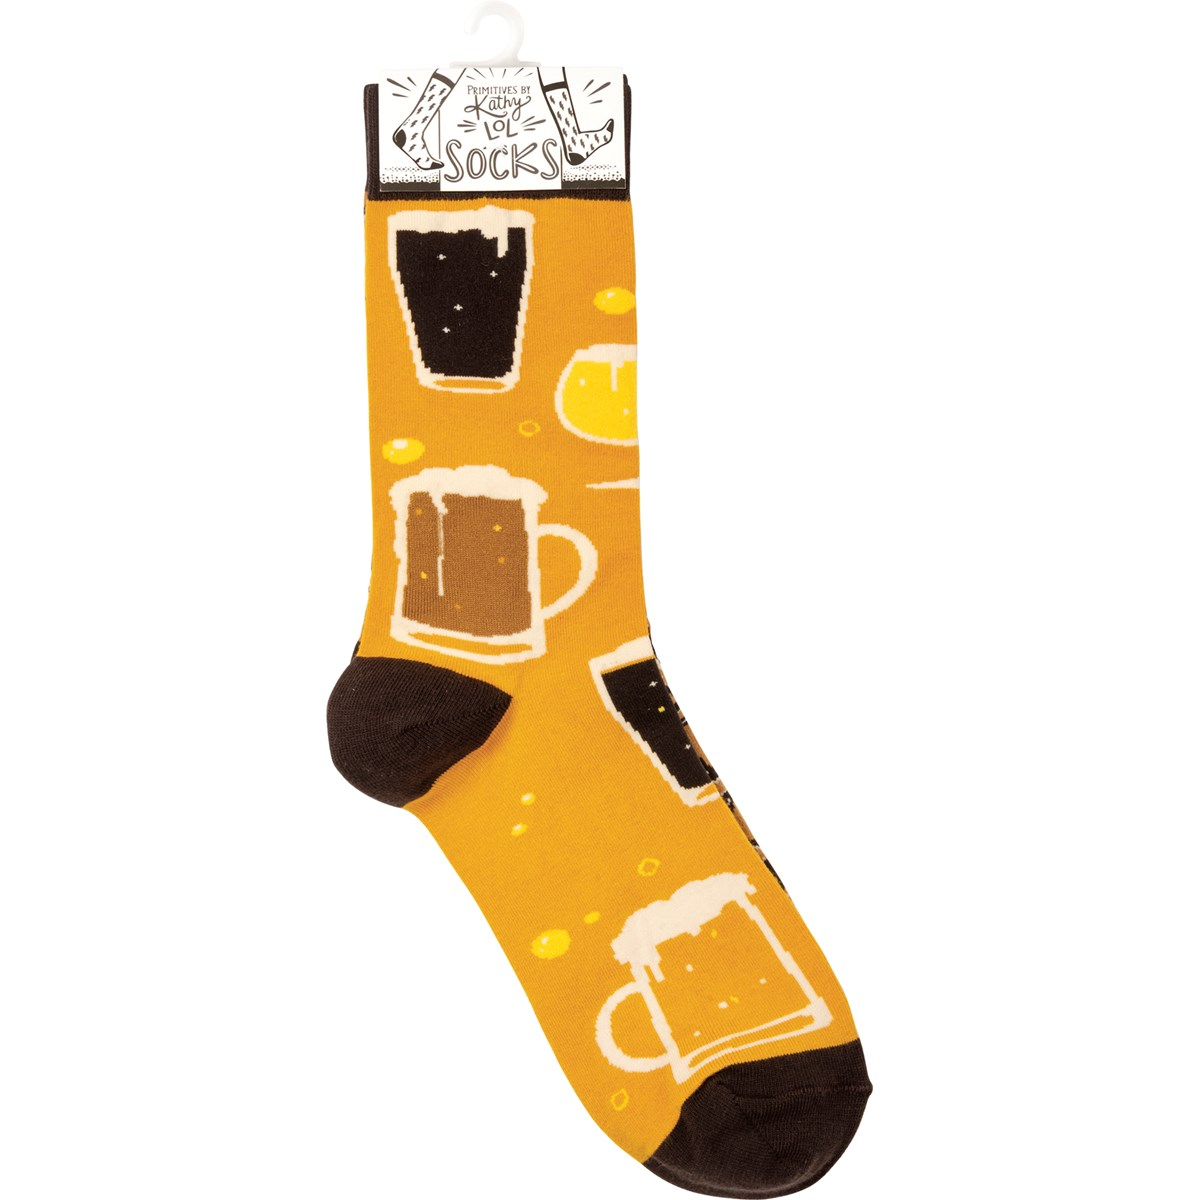 Socks - Beer & Pretzels - One Size Fits Most - Cotton, Nylon, Spandex